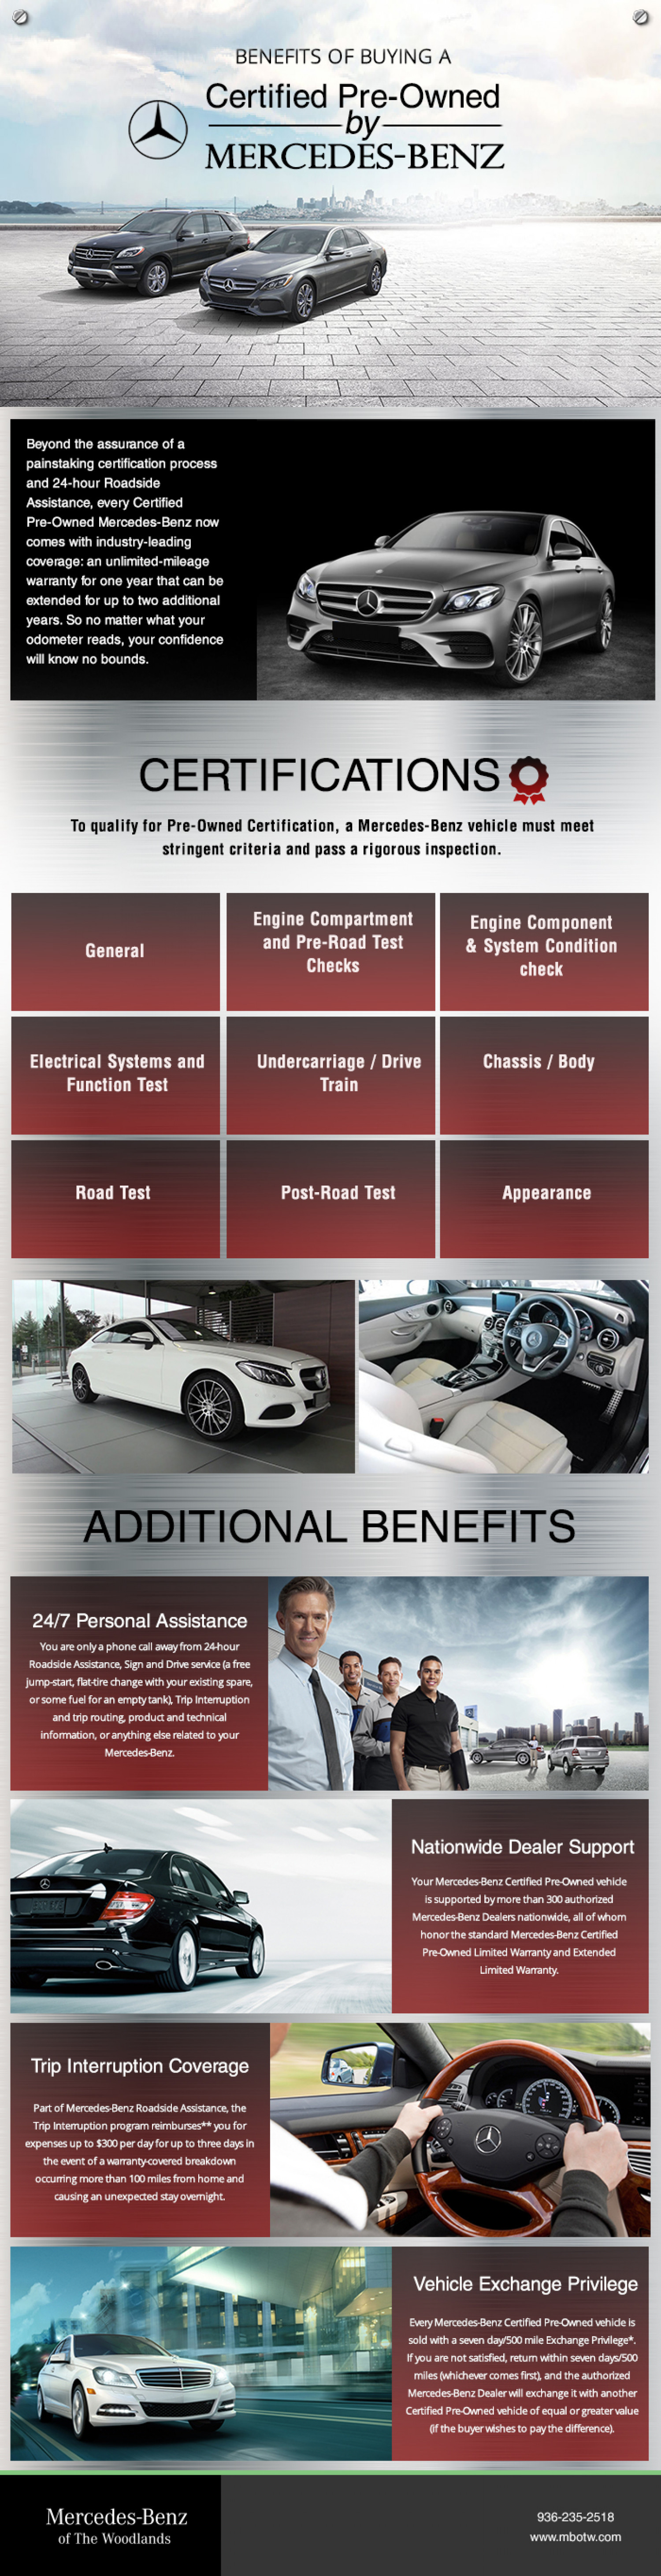 Advantages of Certified Pre-Owned vehicles from Mercedes Benz  Infographic